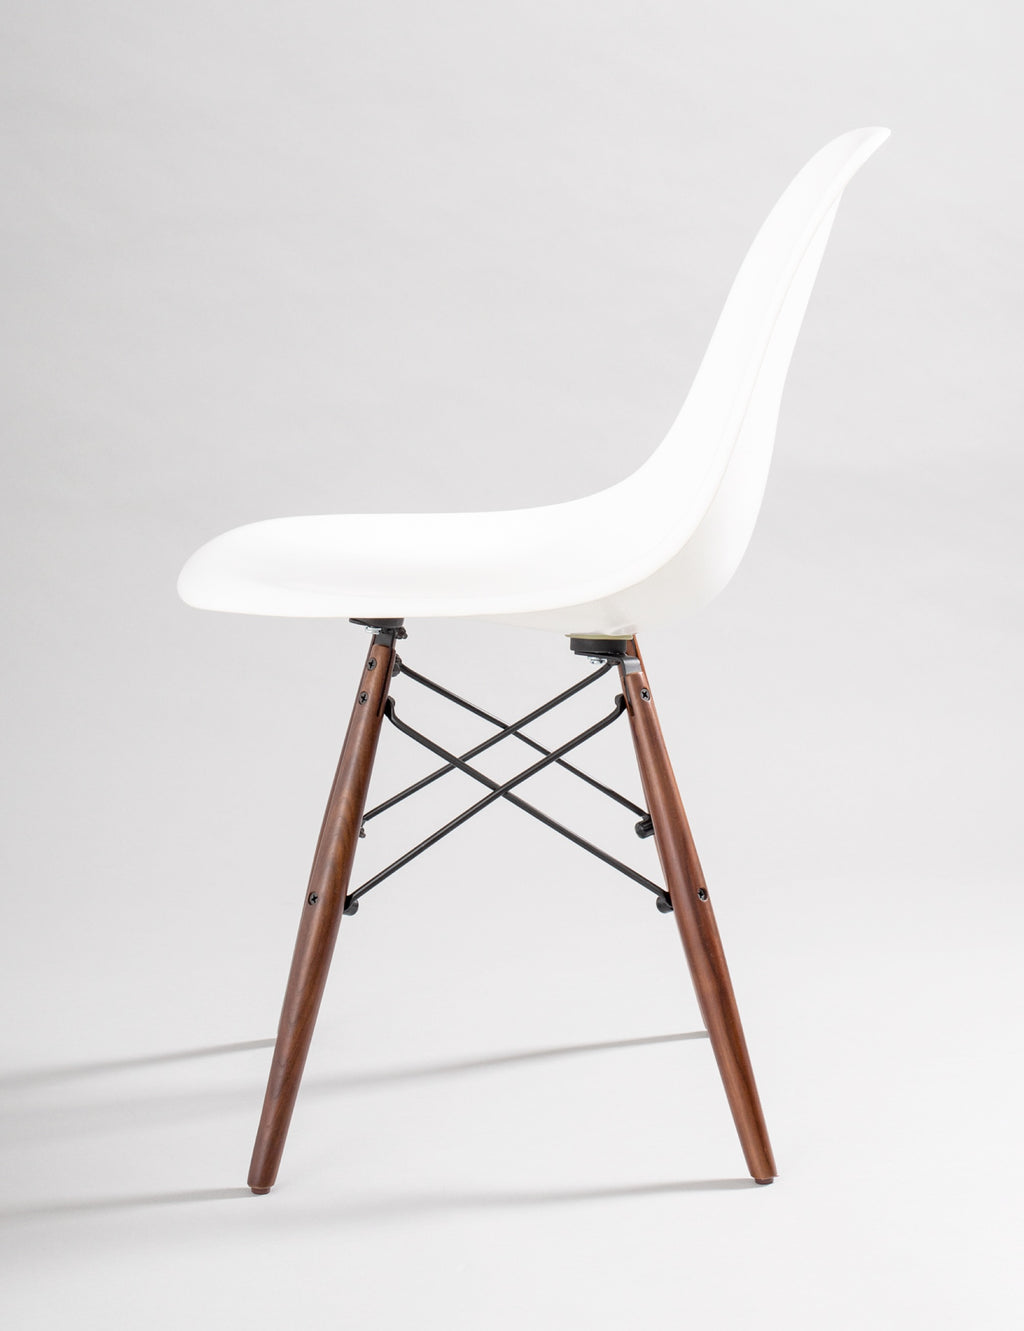 Modernica Case Study Side Shell Dowel Base - White Fiberglass Chair - By Autotype